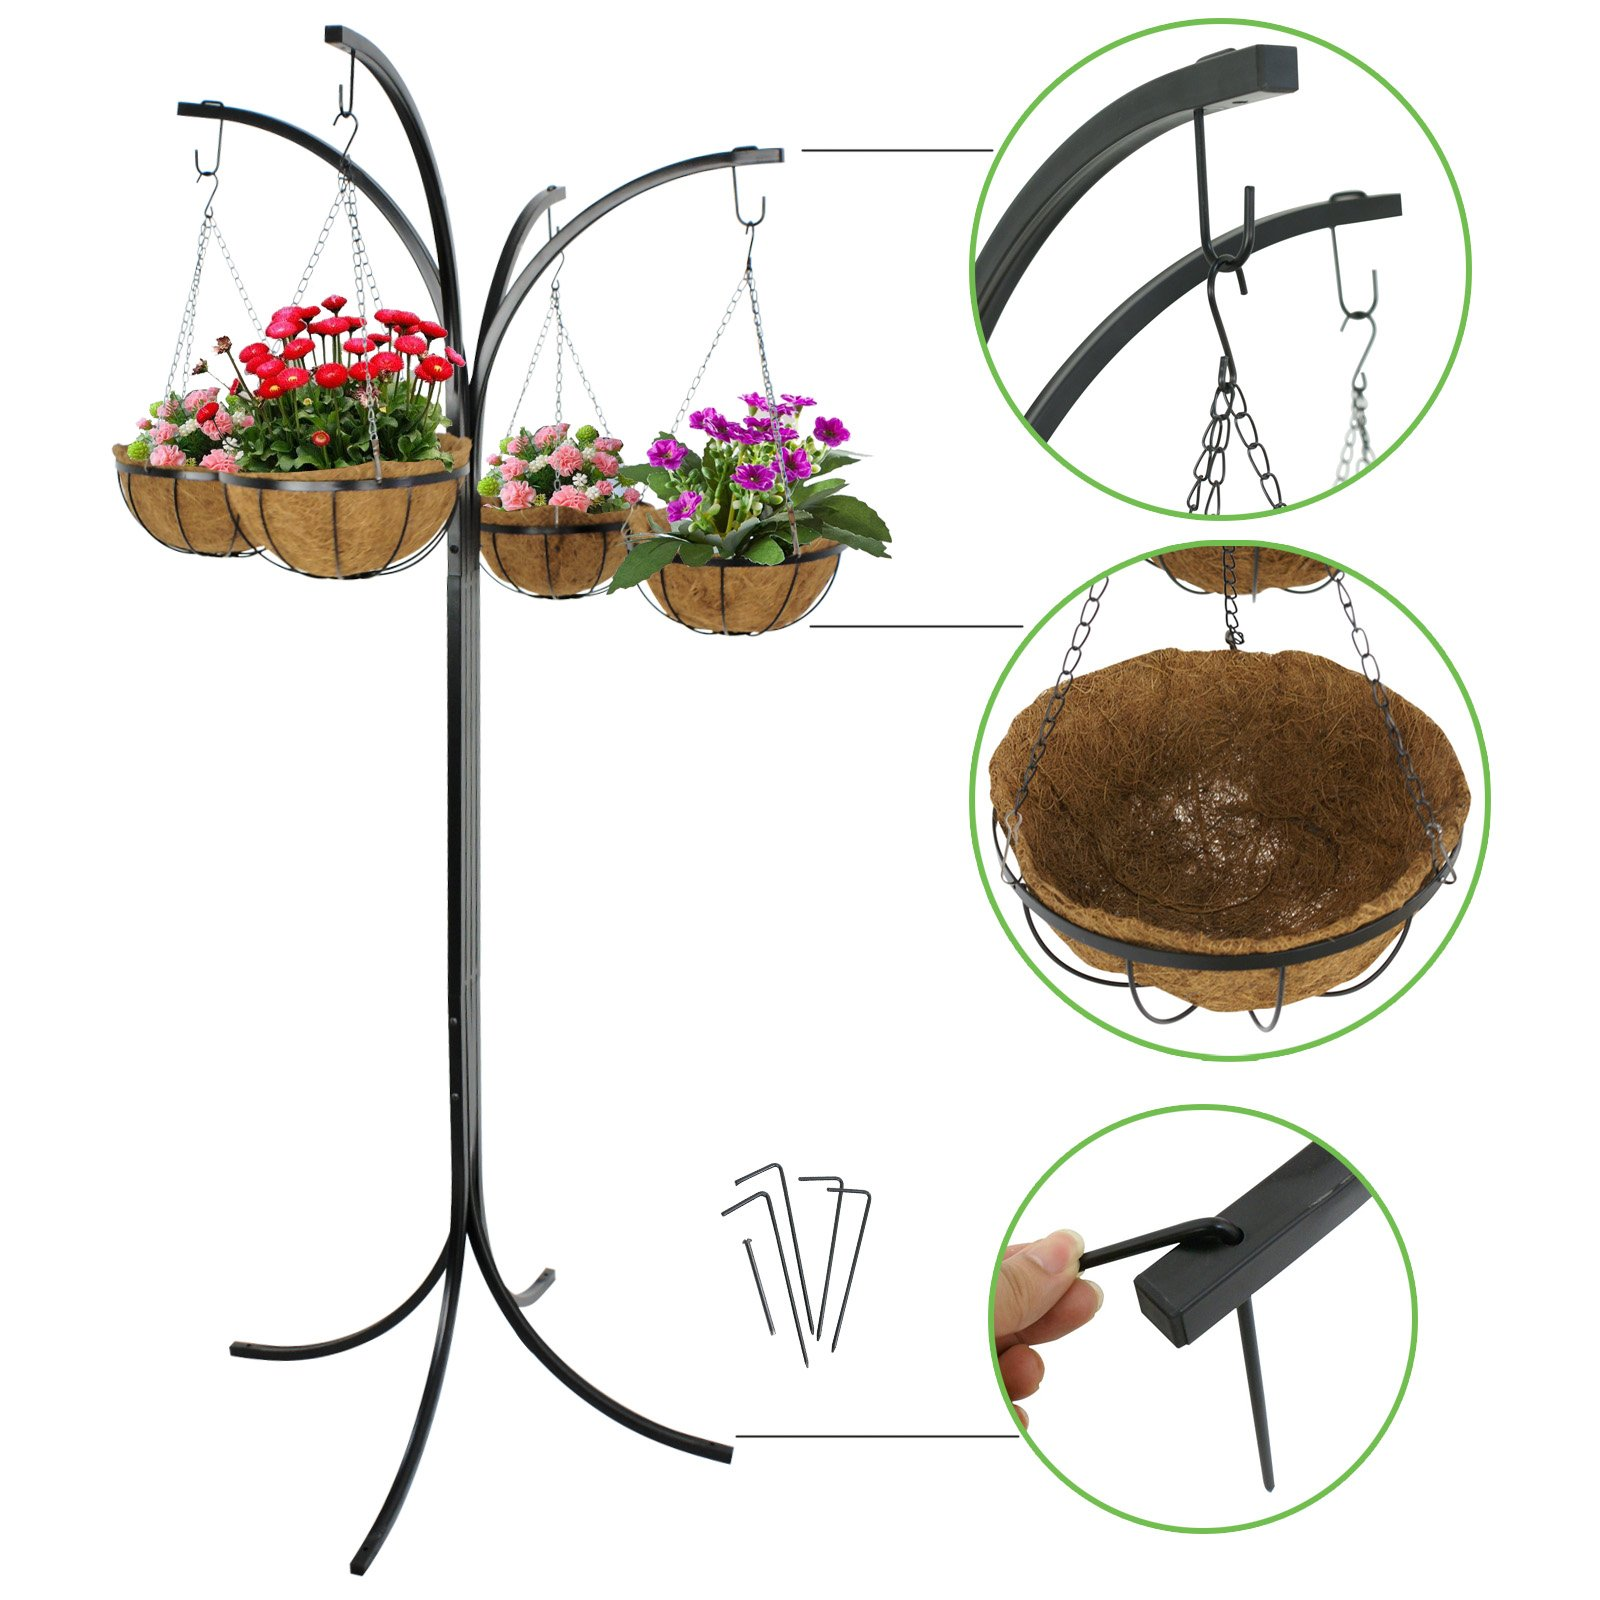 Smartxchoices Black Solid Steel Yard Tree System Plants Holder Stand Heavy Duty 4-arm Tree with 4 Hanging Baskets Display Stand Rack for Yard Gardening Pots Patio Decoration